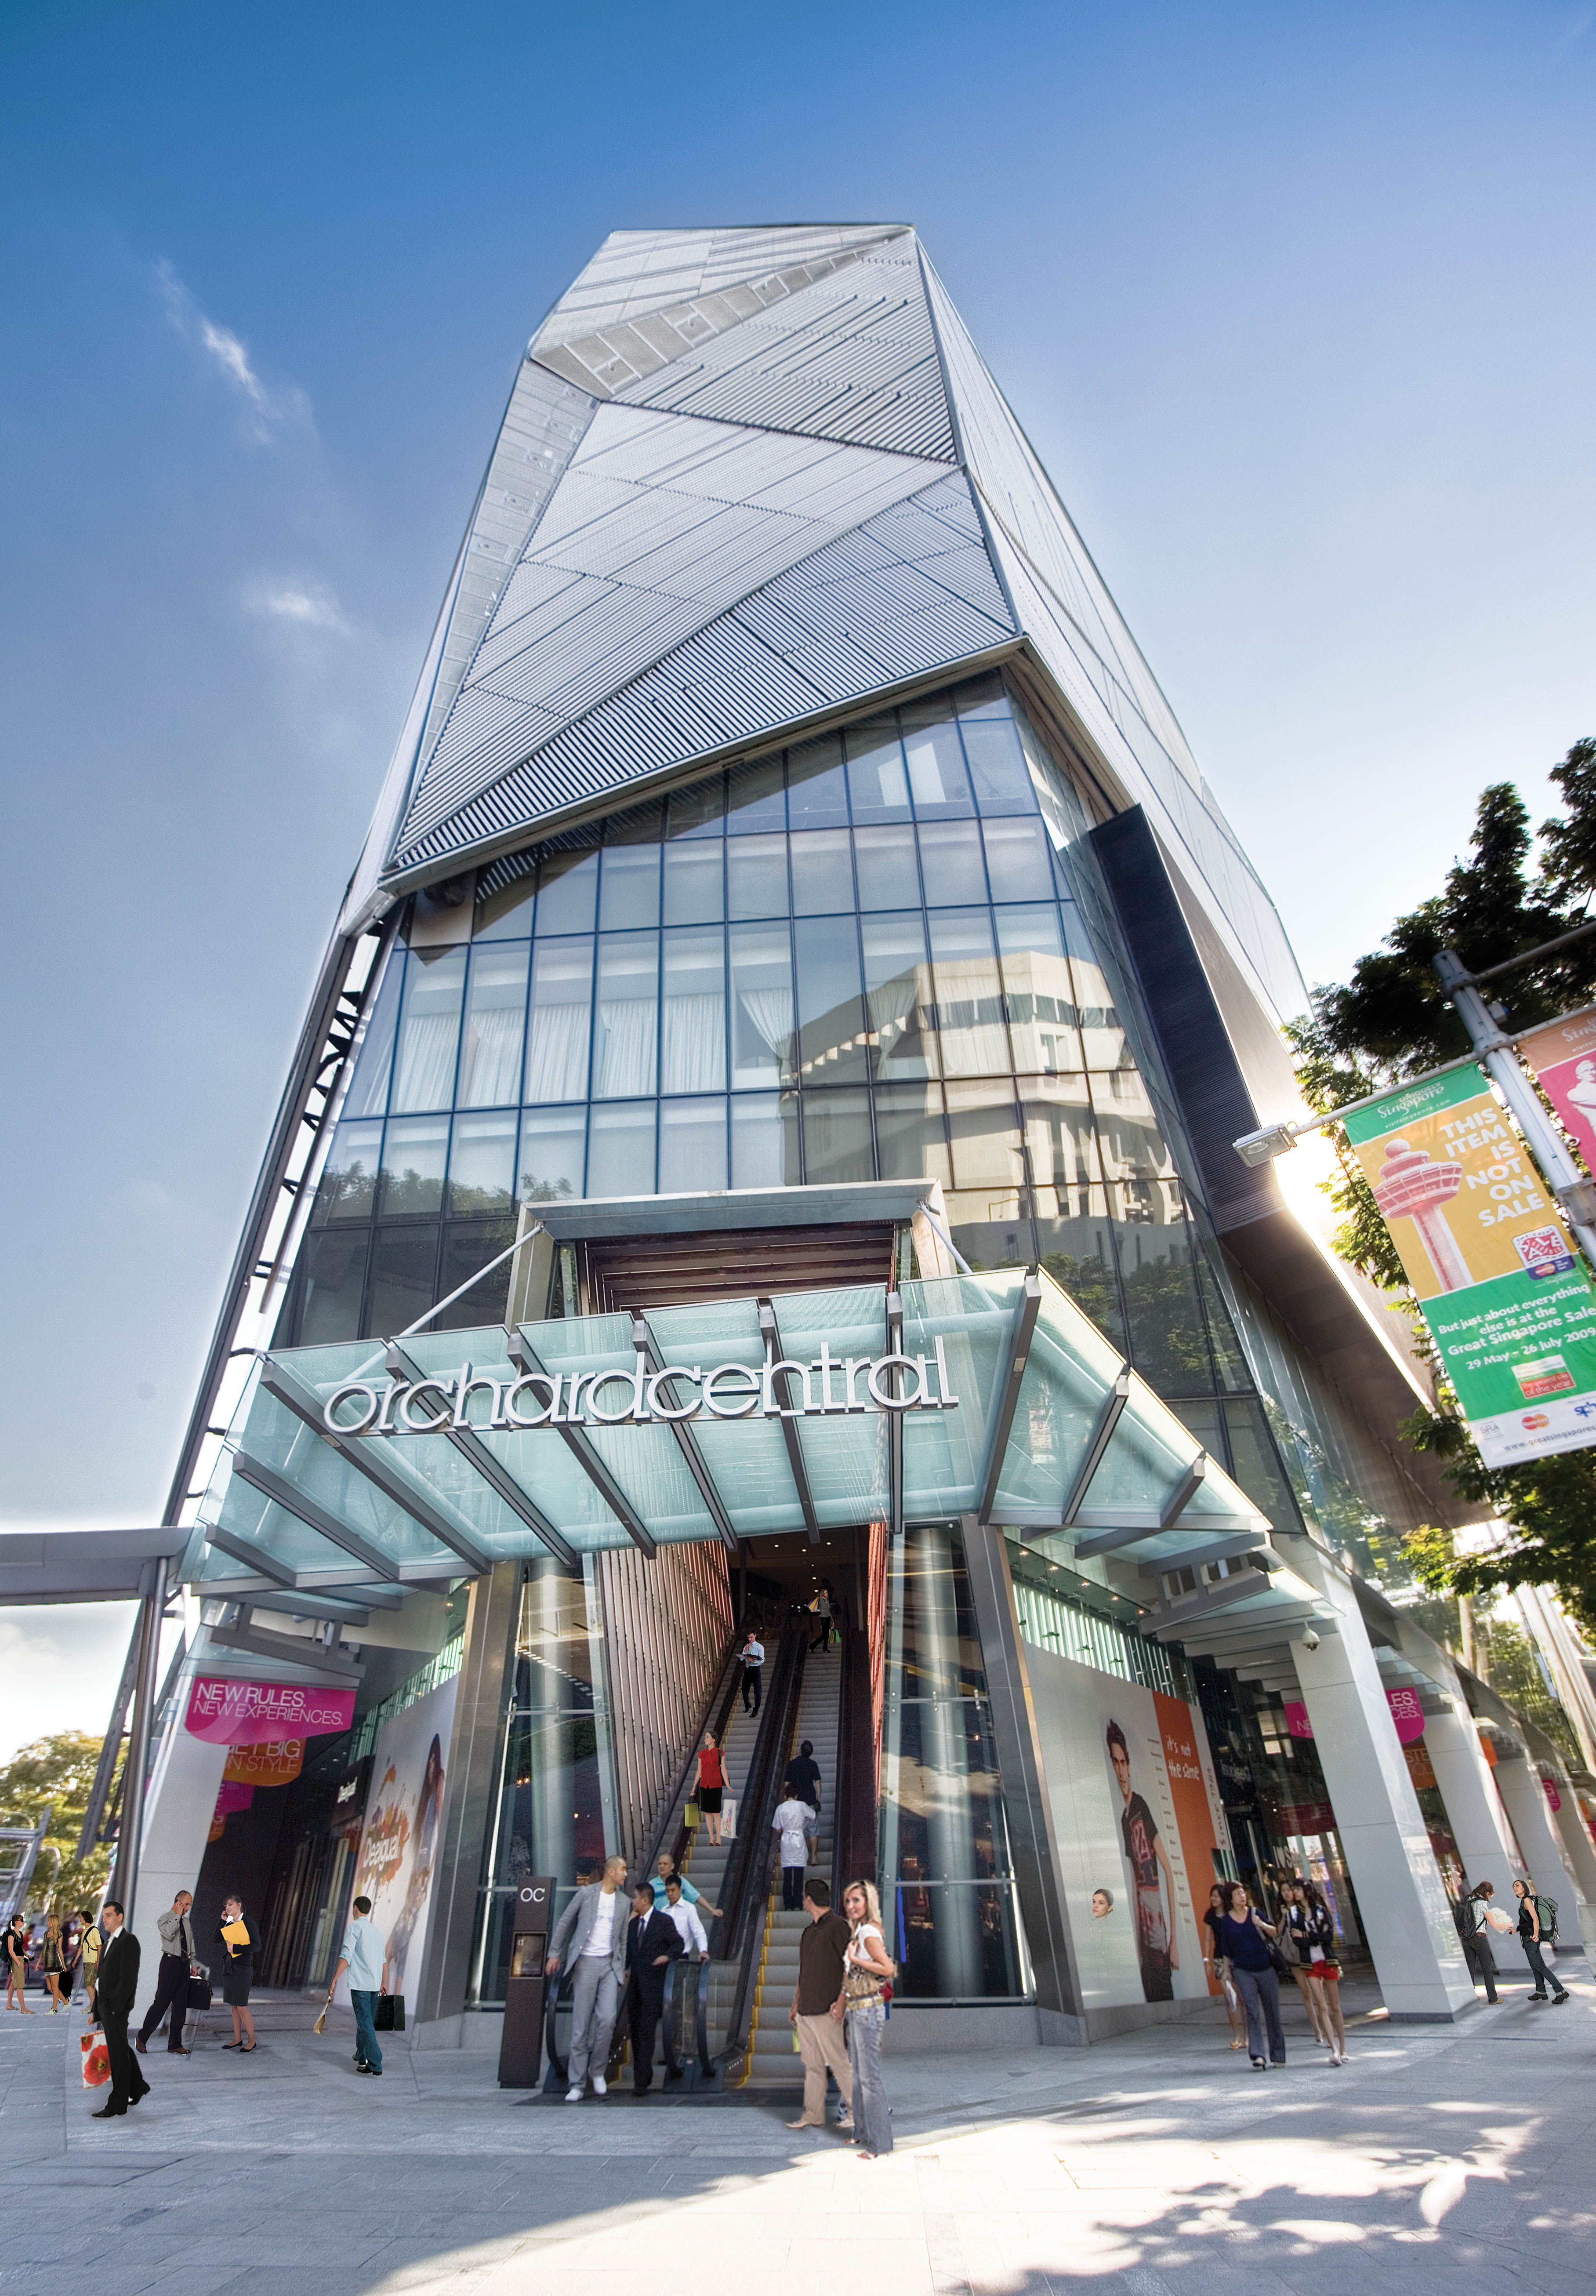 Home Orchard Central Far East Organization Mall Facade Shoping Mall Mall Design